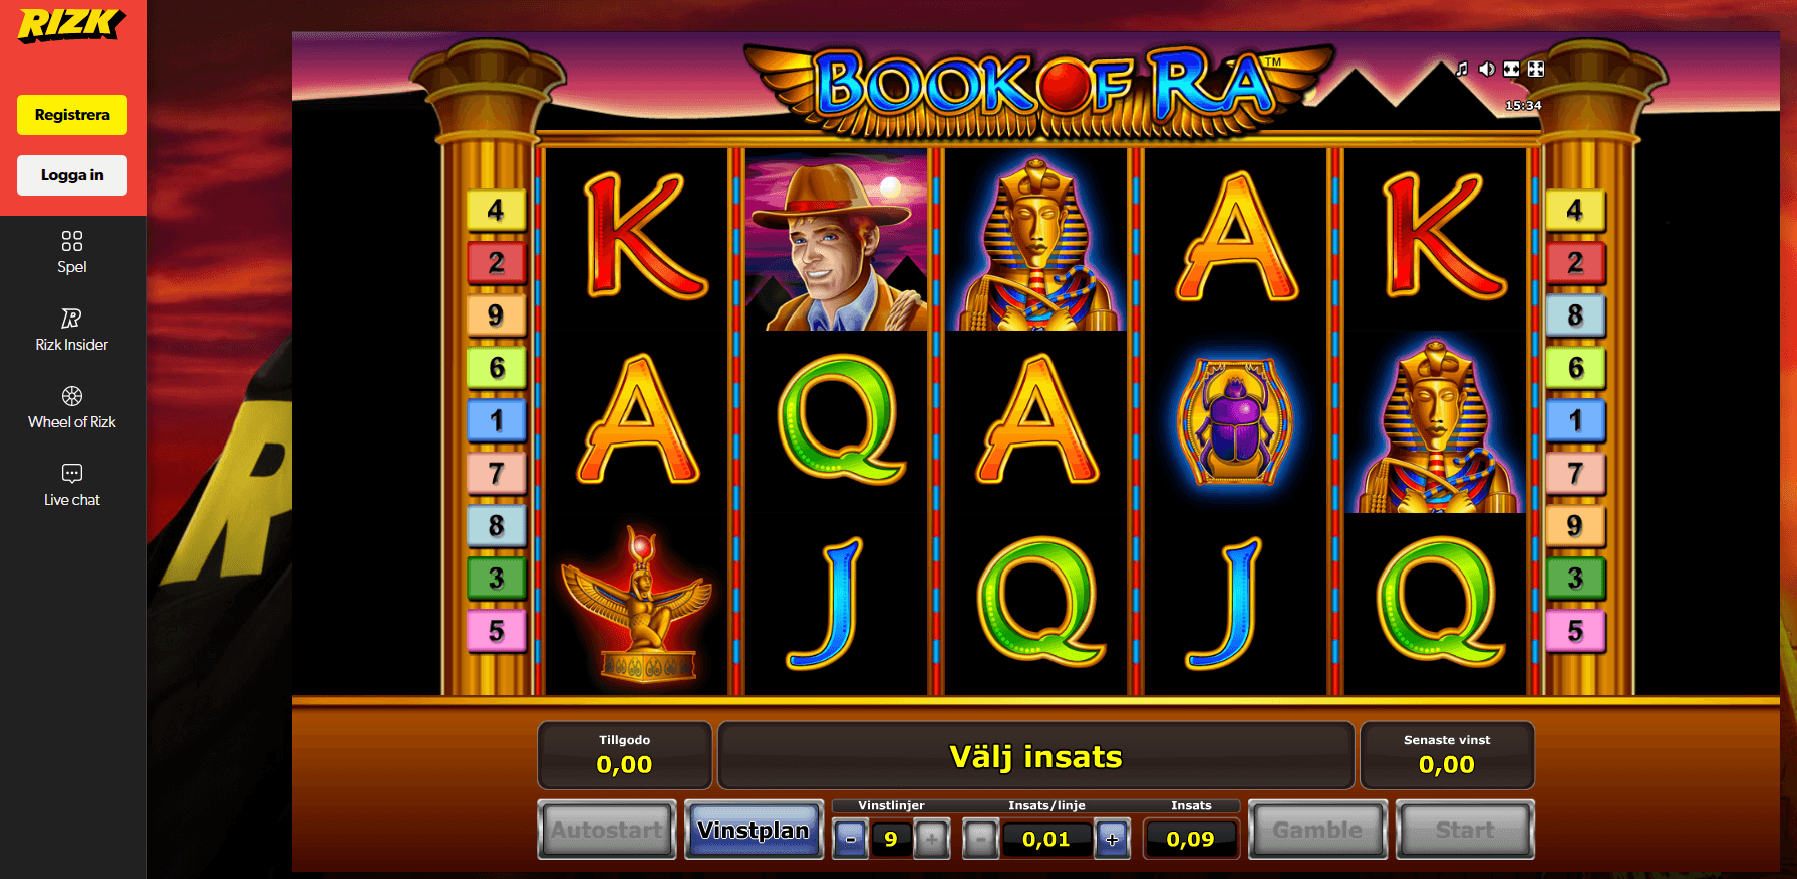 Novomatic games Available on Rizk Casino